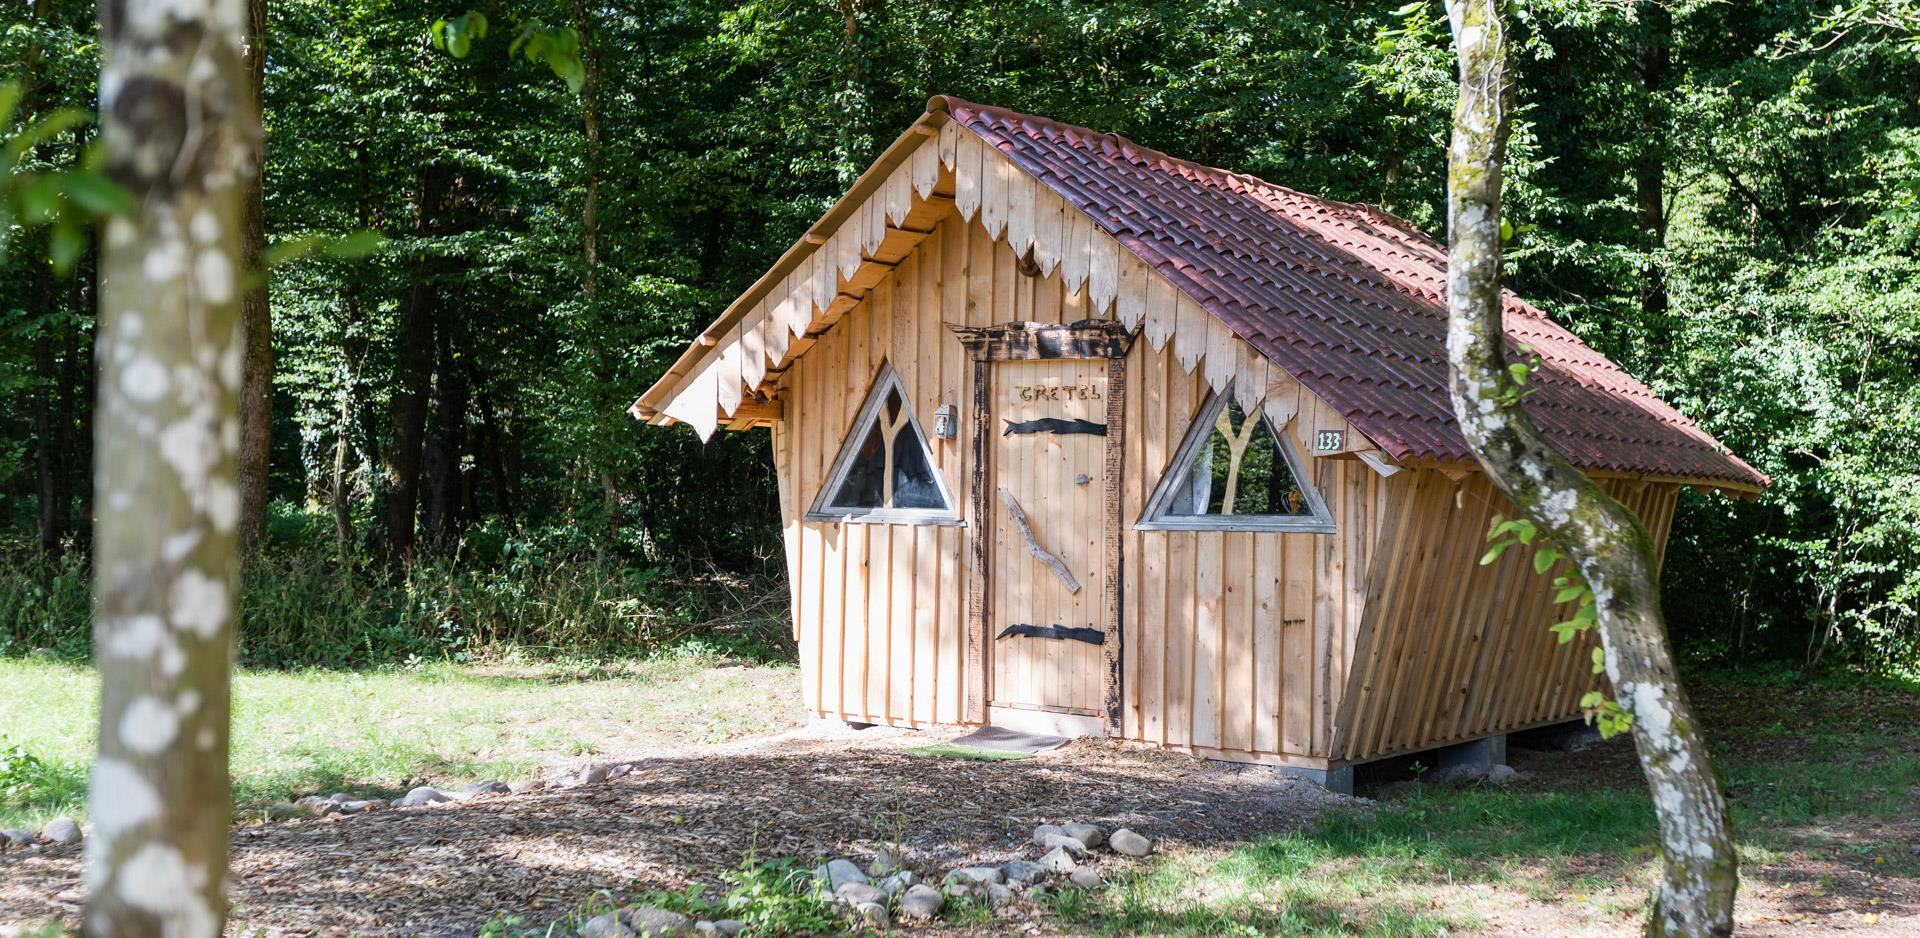 Rental of atypical accommodations near the Vosges Mountains: view of the atypical Wooden Hut of Gretel